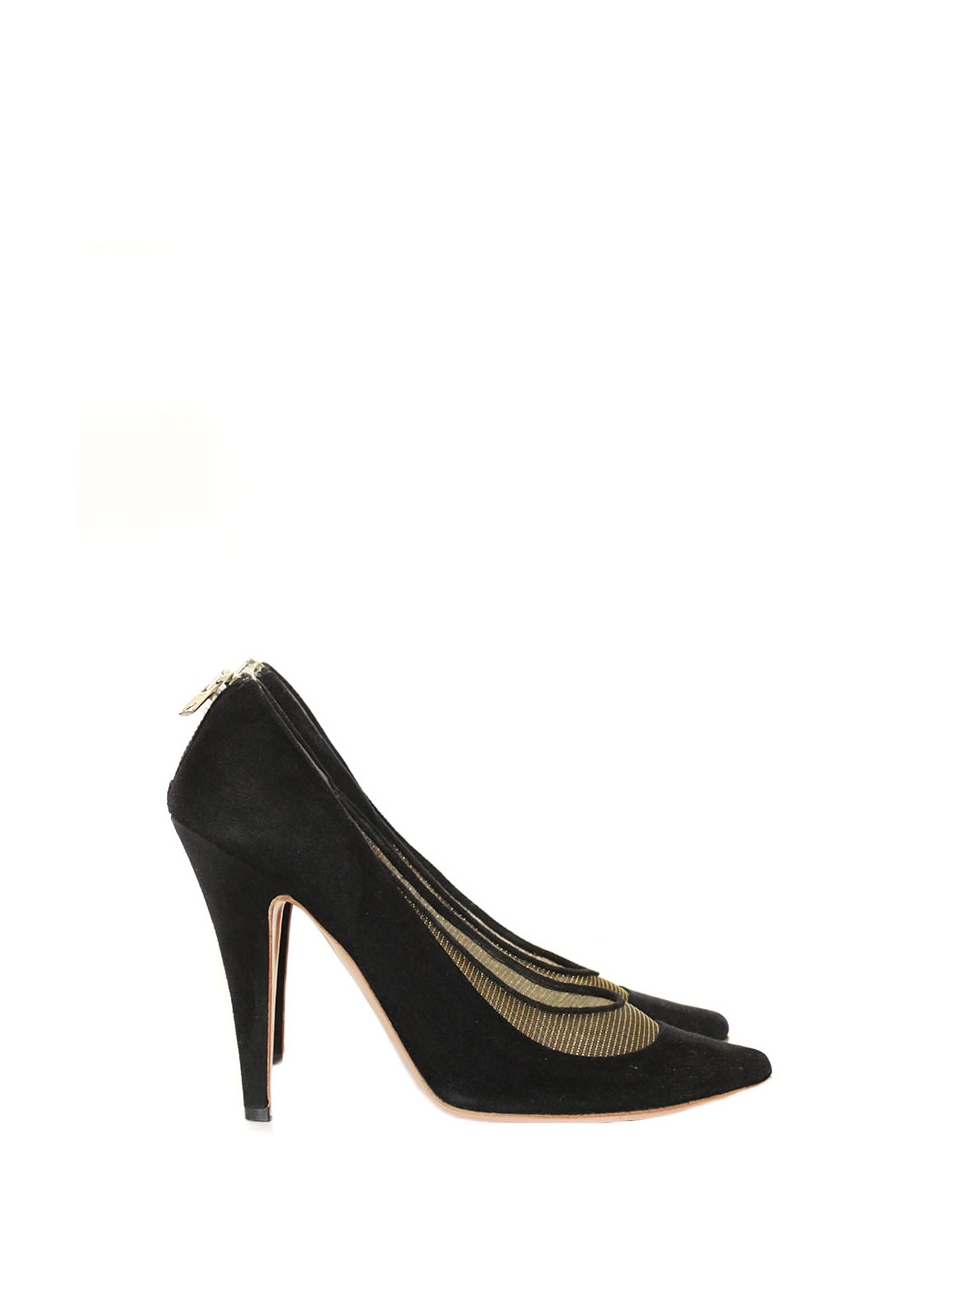 6f46914a5259 Gold metallic canvas and black suede high heel pumps Retail price €550 Size  39